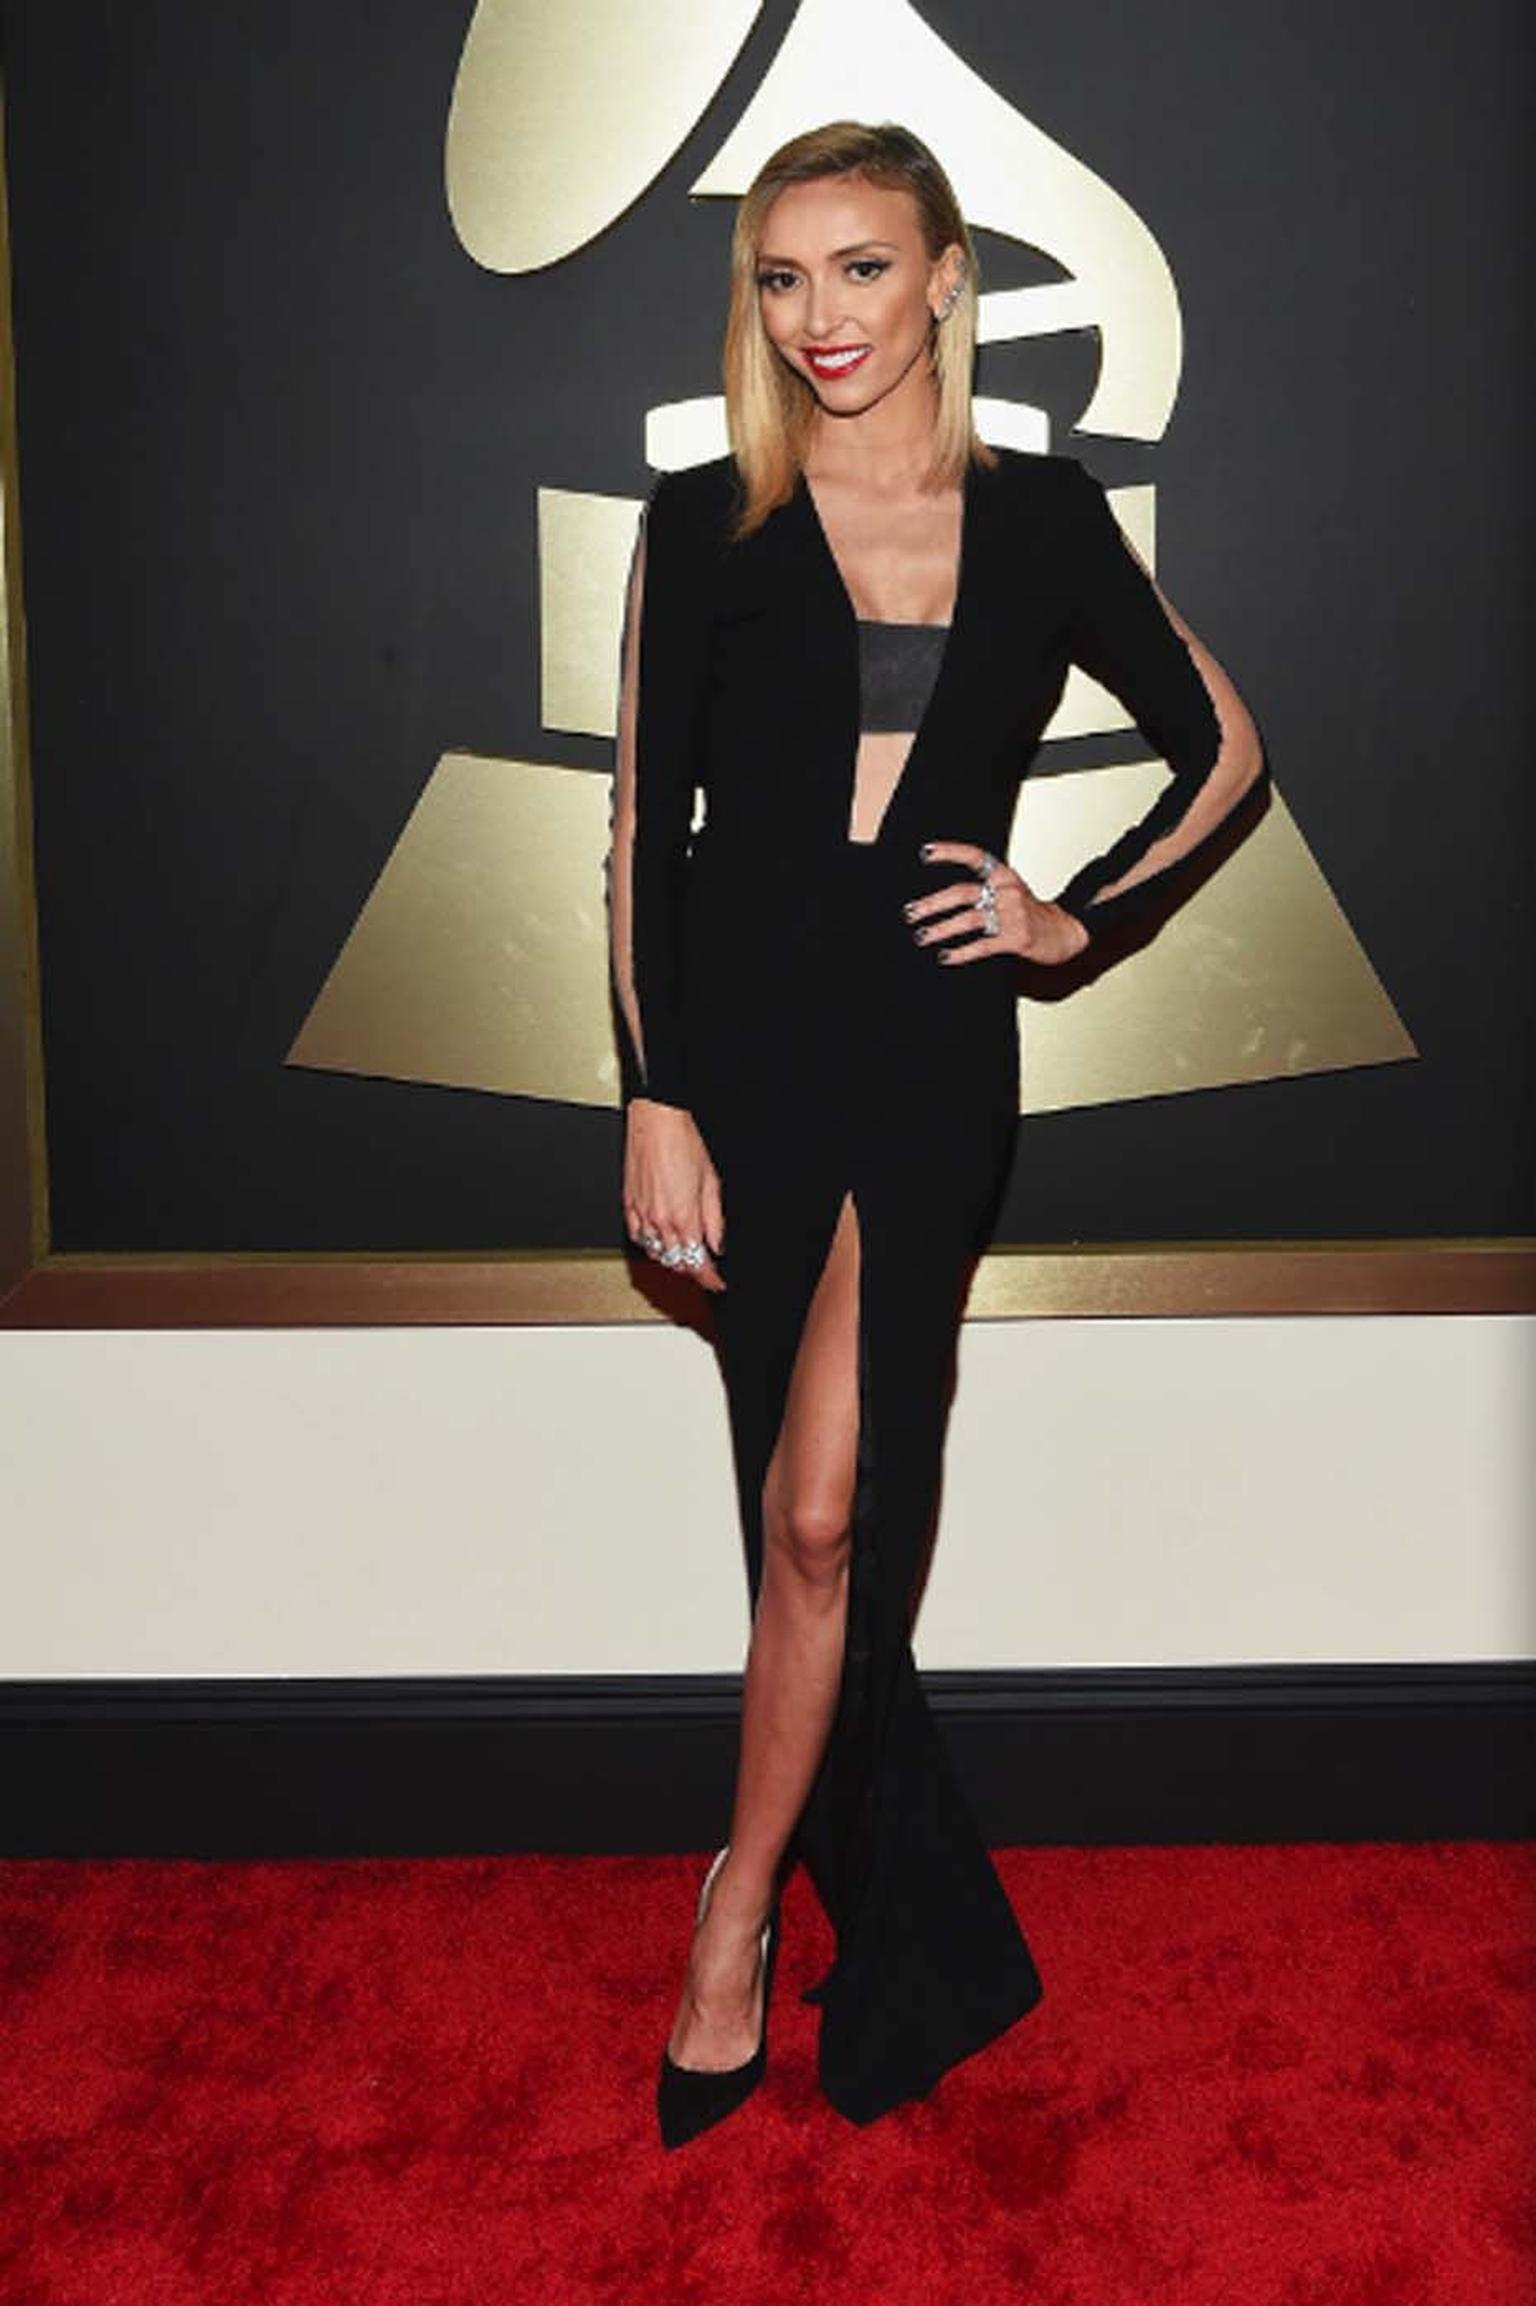 Television presenter and journalist Giuliana Rancid walked the Grammy's red carpet